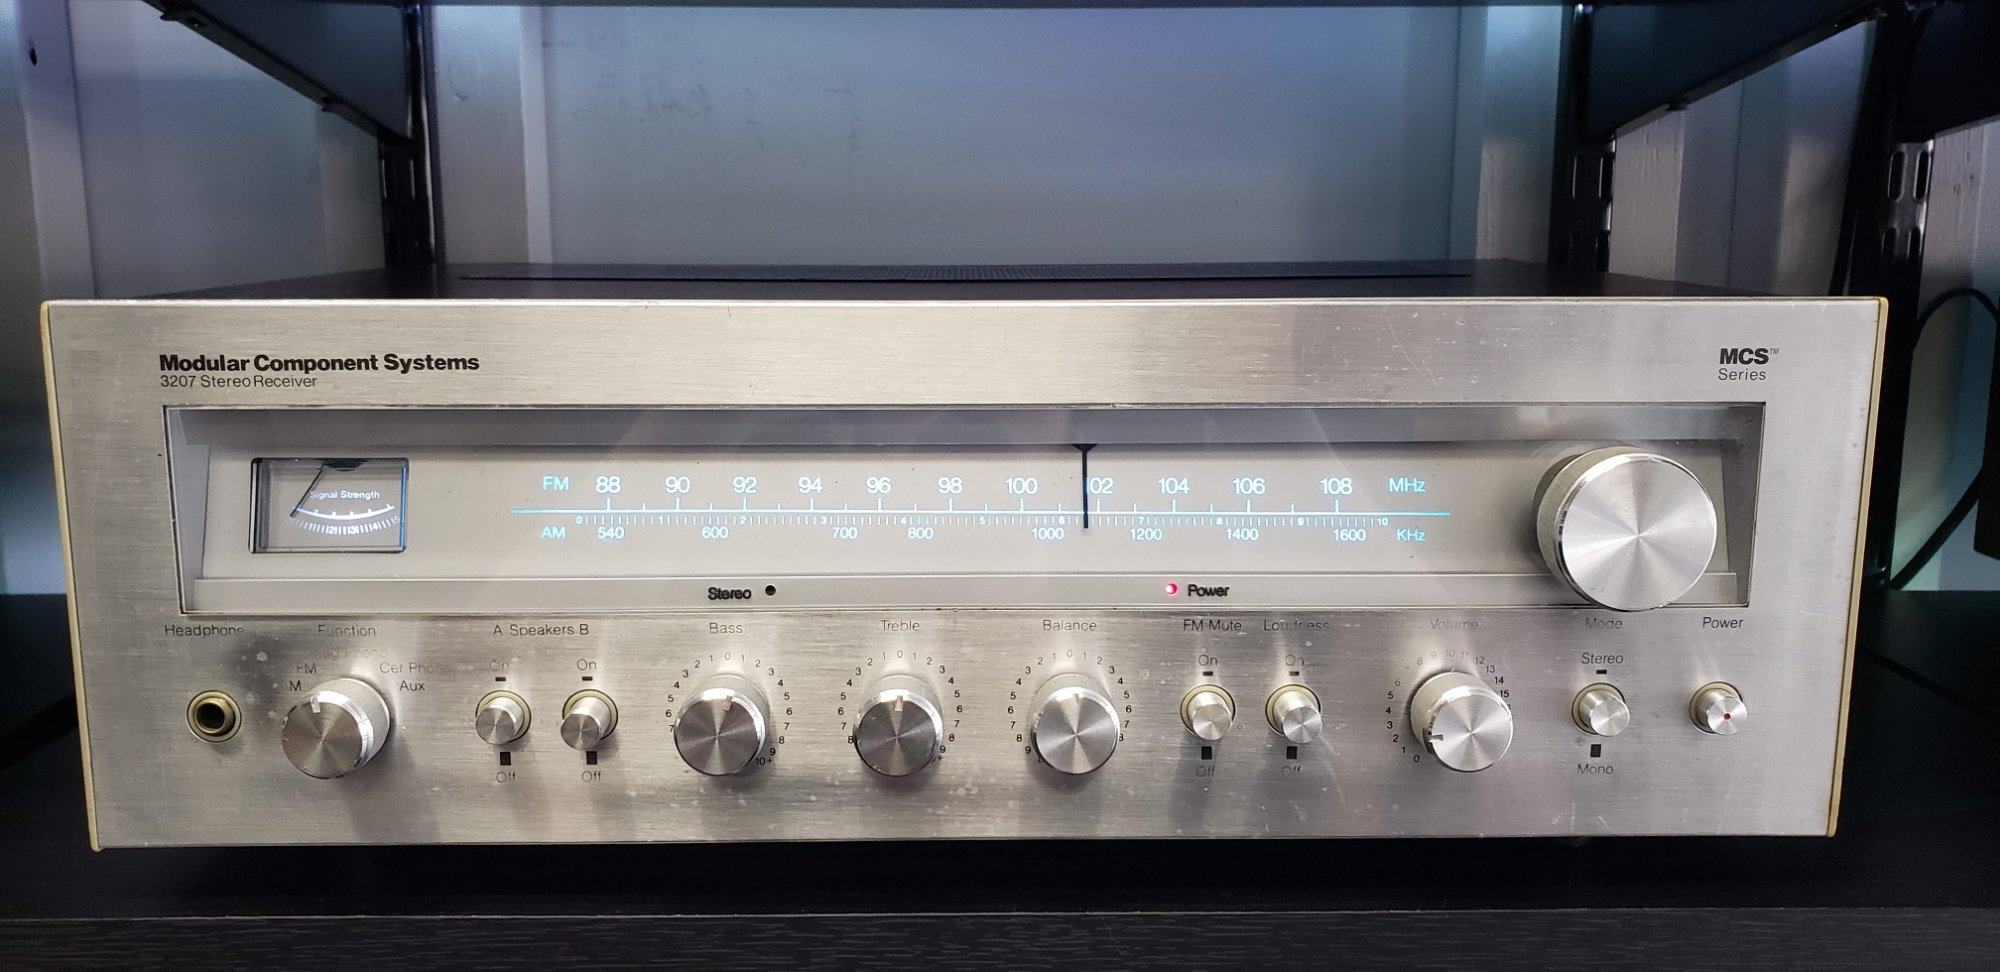 Modular Component Systems 3207 Stereo receiver (7 watts/ channel)